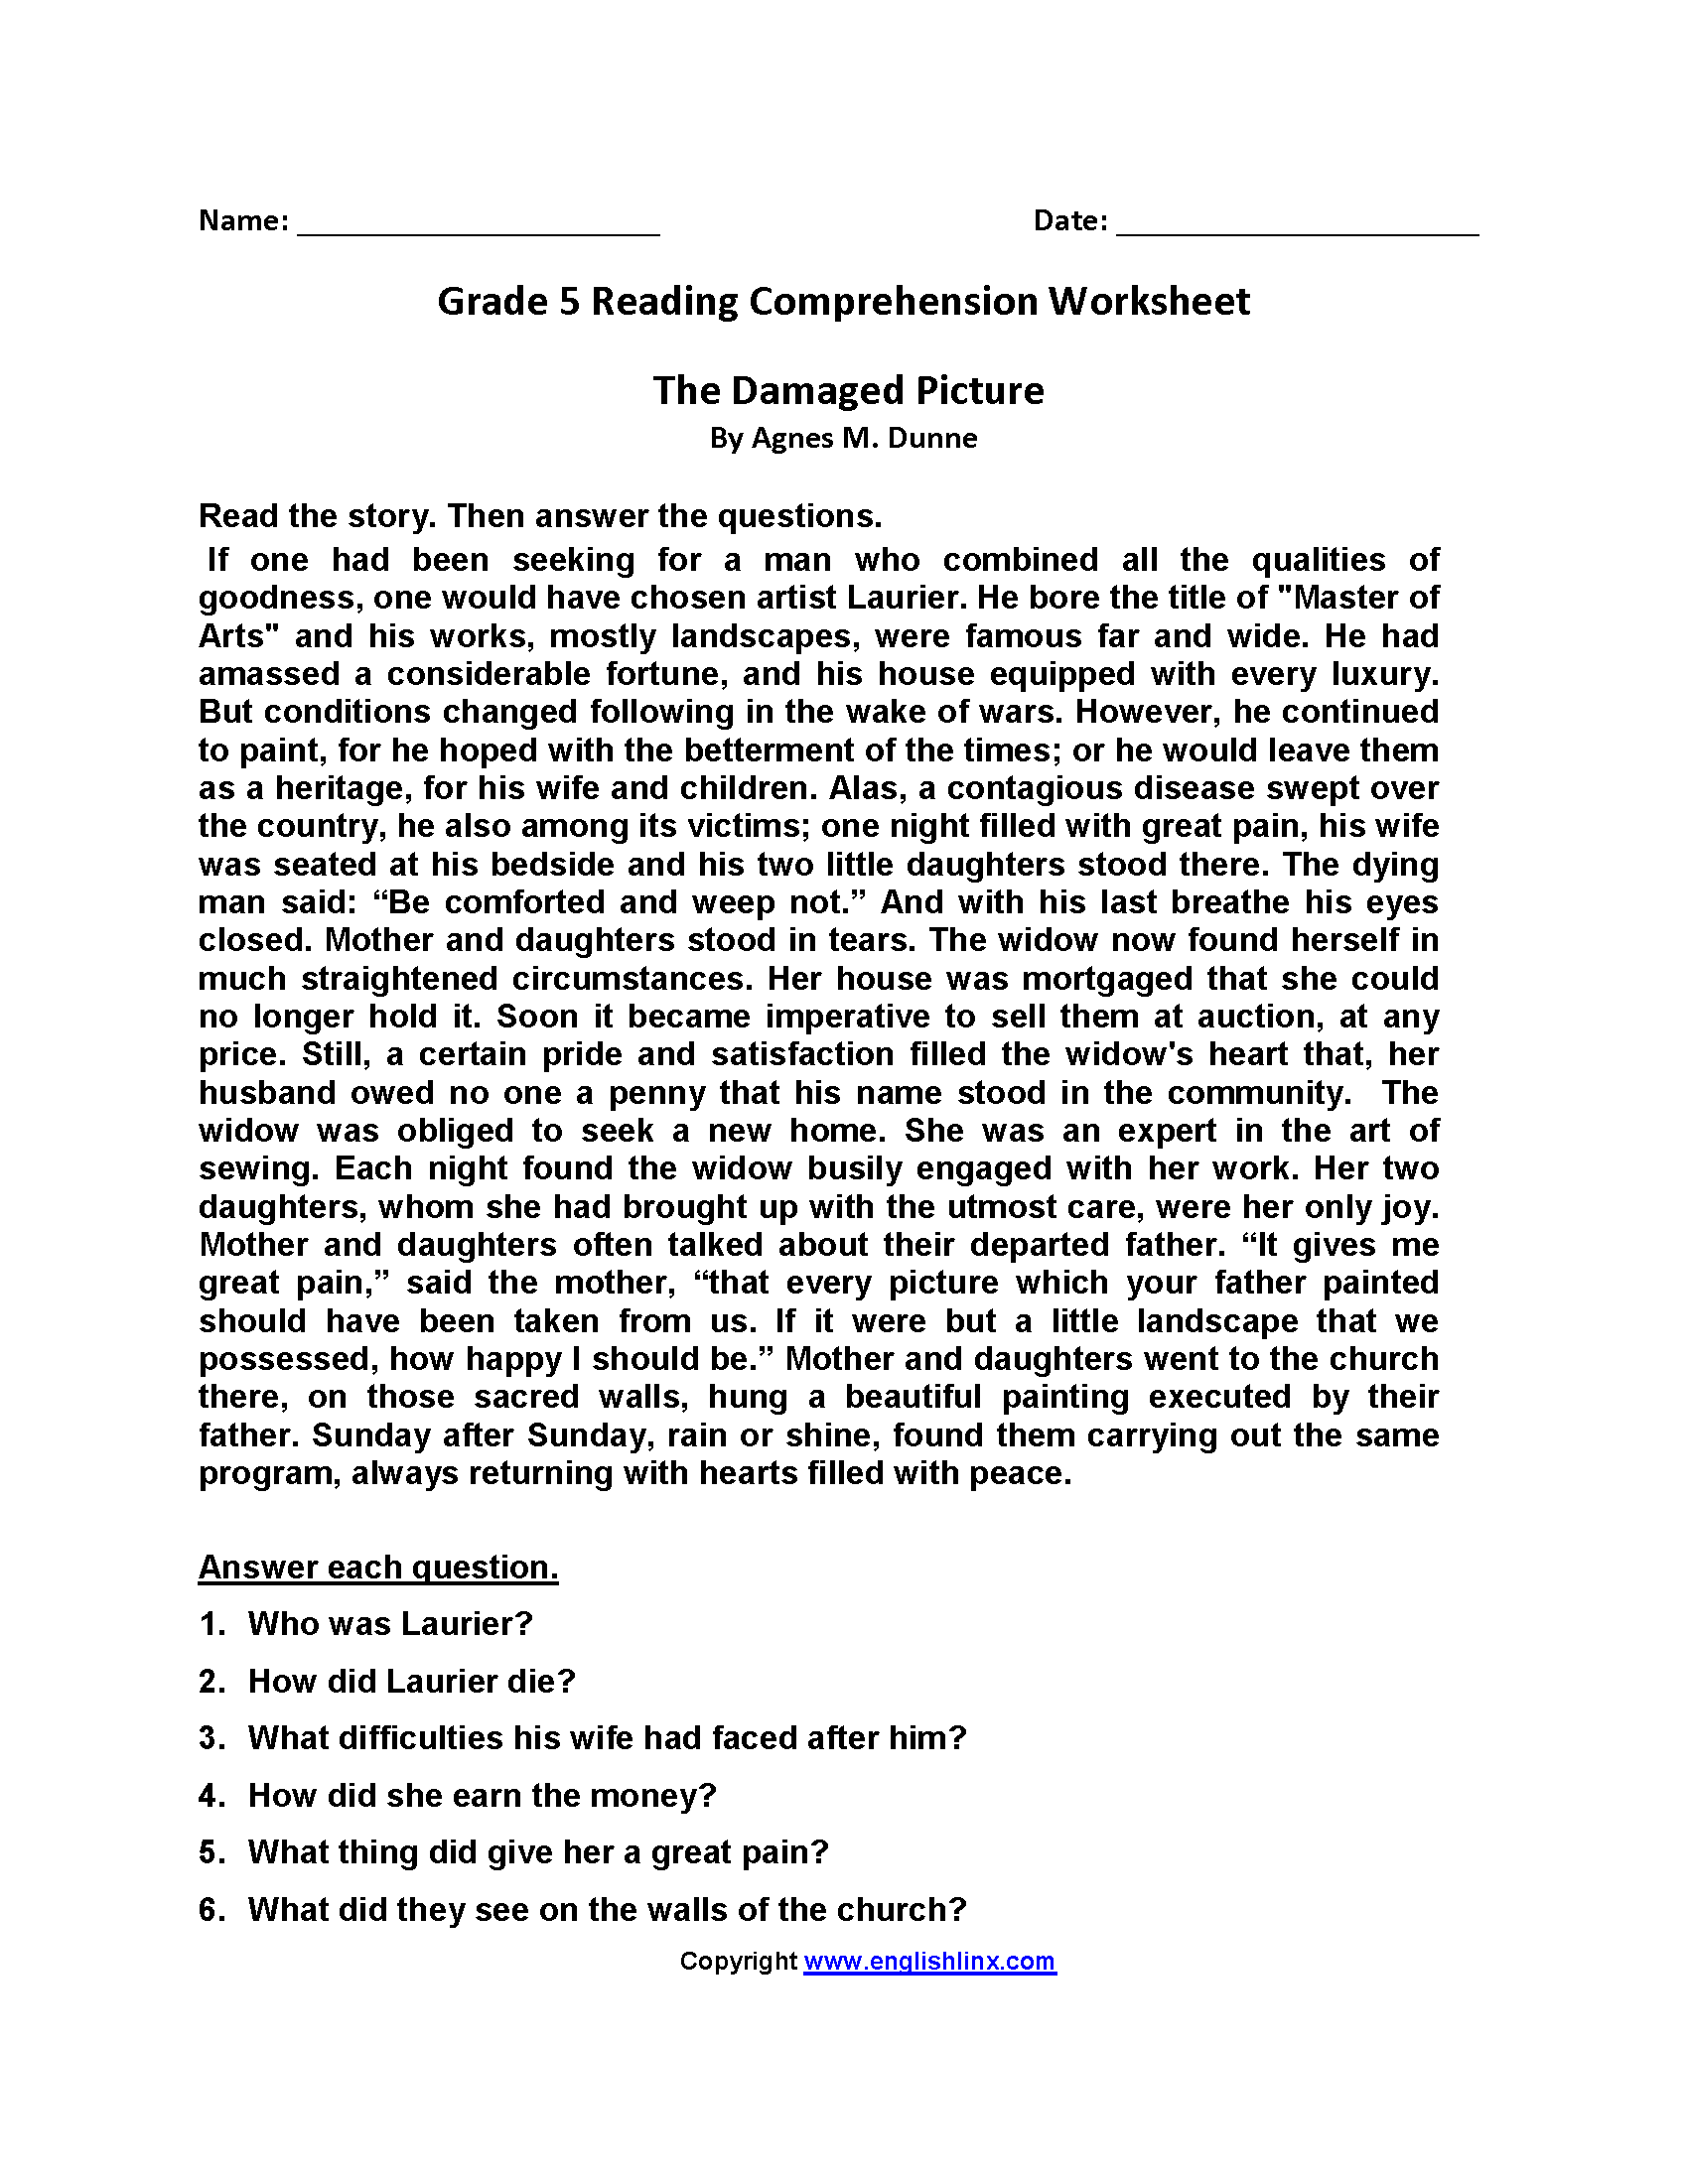 Damaged Picture Fifth Grade Reading Worksheets Reading